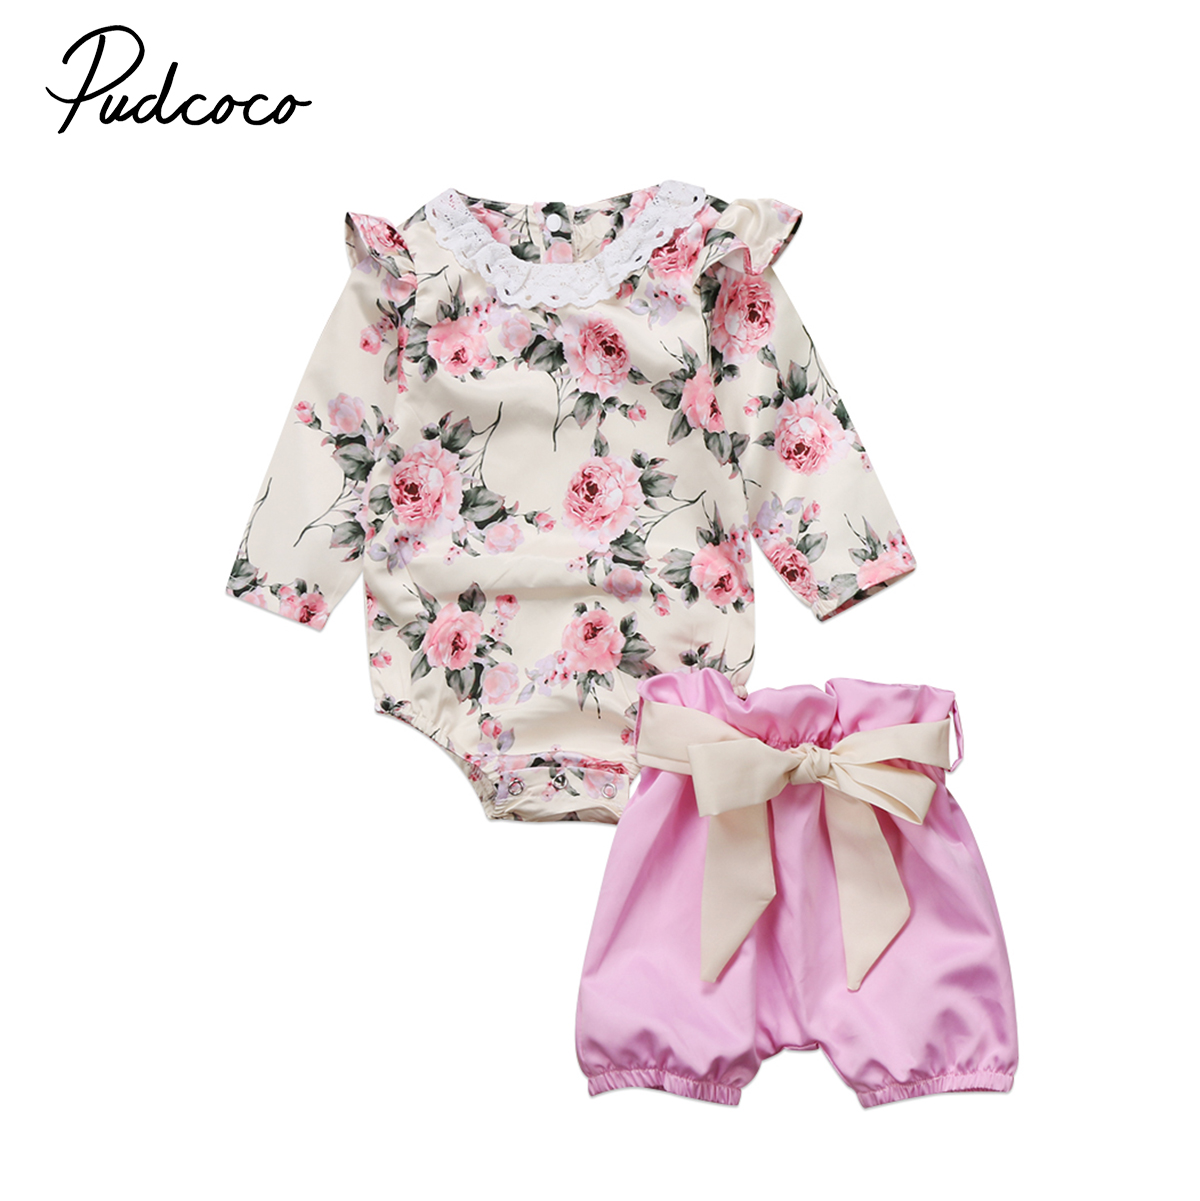 Pudcoco 2Pcs Newborn Baby Girls Clothing Sets Long Sleeve Floral Ruffles Romper Shorts New Baby Cute Outfits Set Clothes 2pcs cute newborn baby girl clothes 2017 summer solid color ruffles baby romper bunny hat outfits sunsuit kids clothing 0 24m